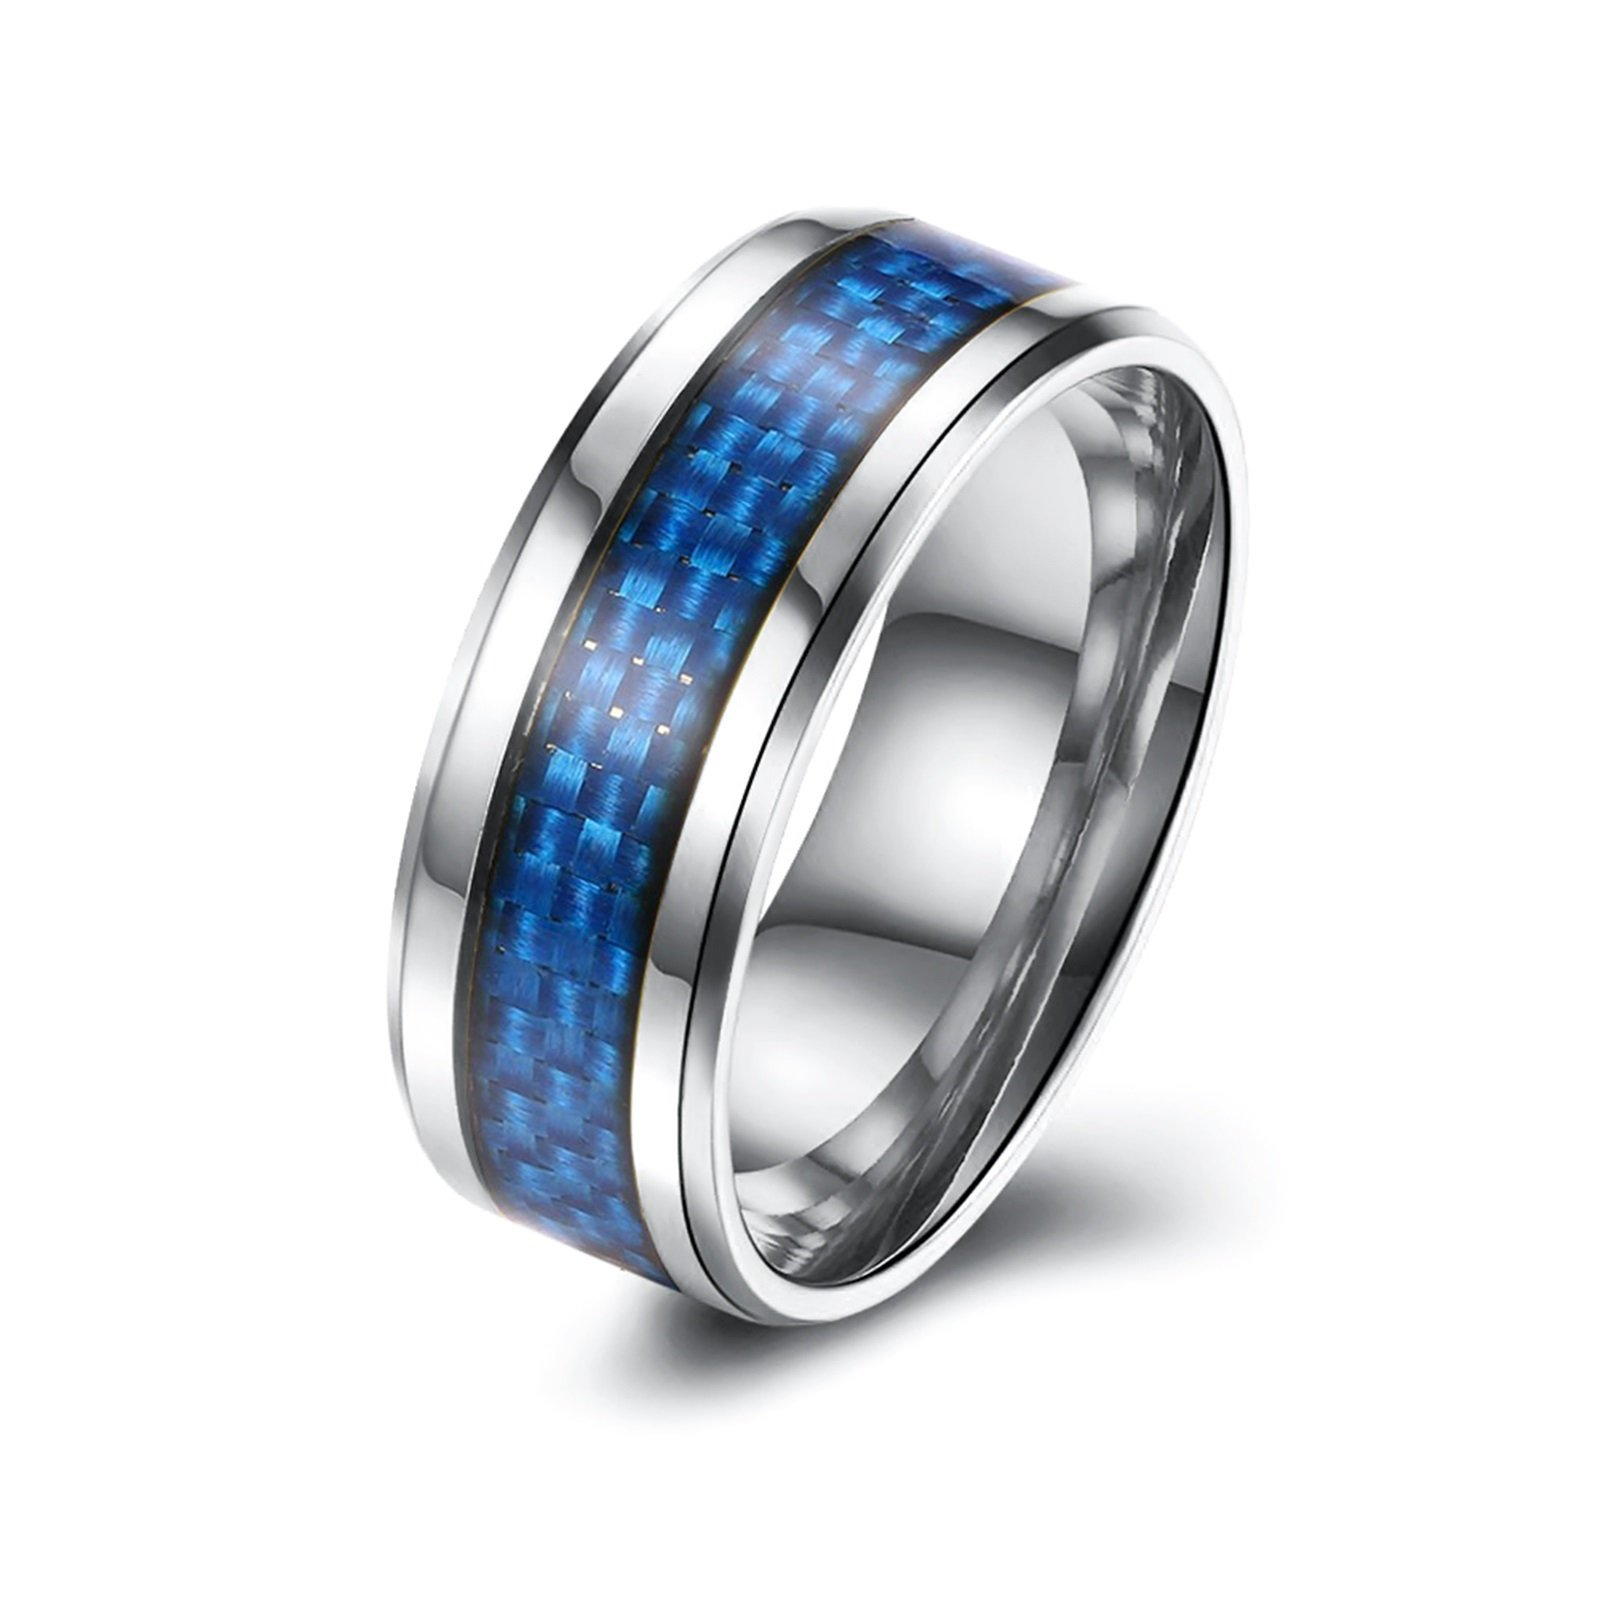 Epinki 8MM Blue Carbon Fiber Stainless Steel Carbide Wedding Band Ring Polished Finish Size 10 Men Accessories